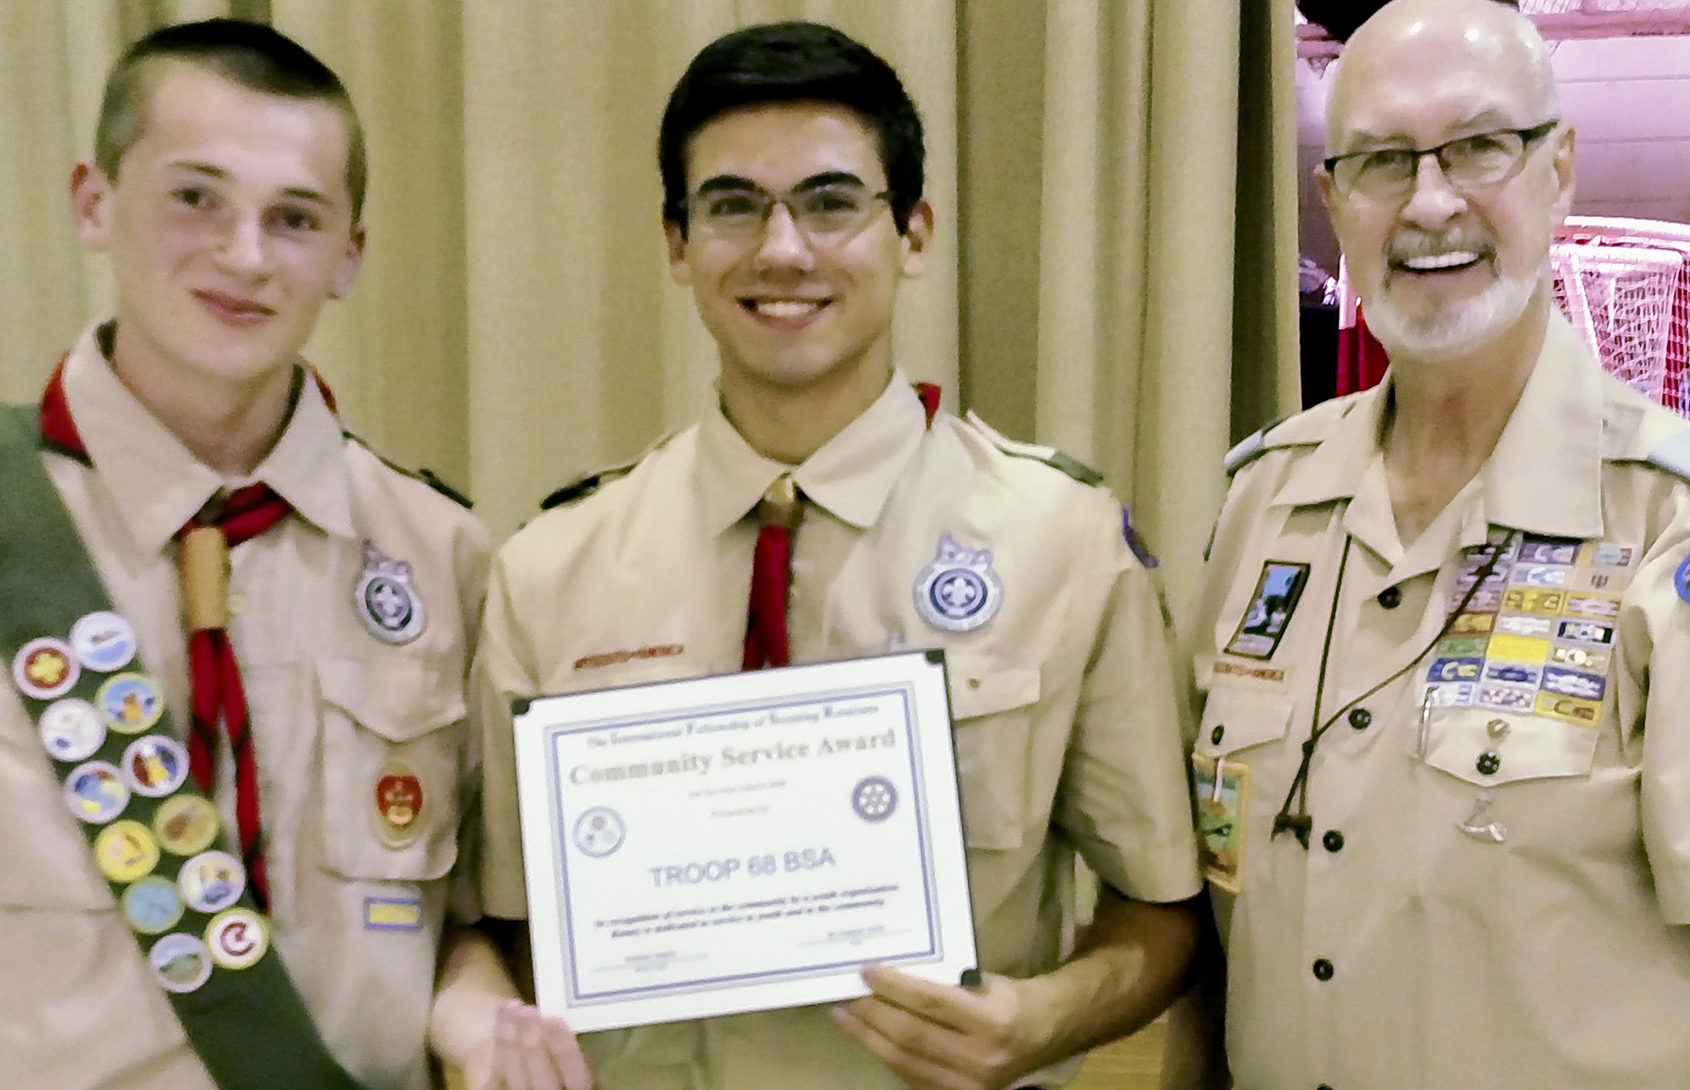 (above) The Rotary Community Service Award was presented by Dr. Hal Daume, Rotary Club representative and Scouting Commissioner, to Senior Patrol Leader Doug Ladzinski and Assistant Senior Patrol Leader for Service Kyle Engemann.